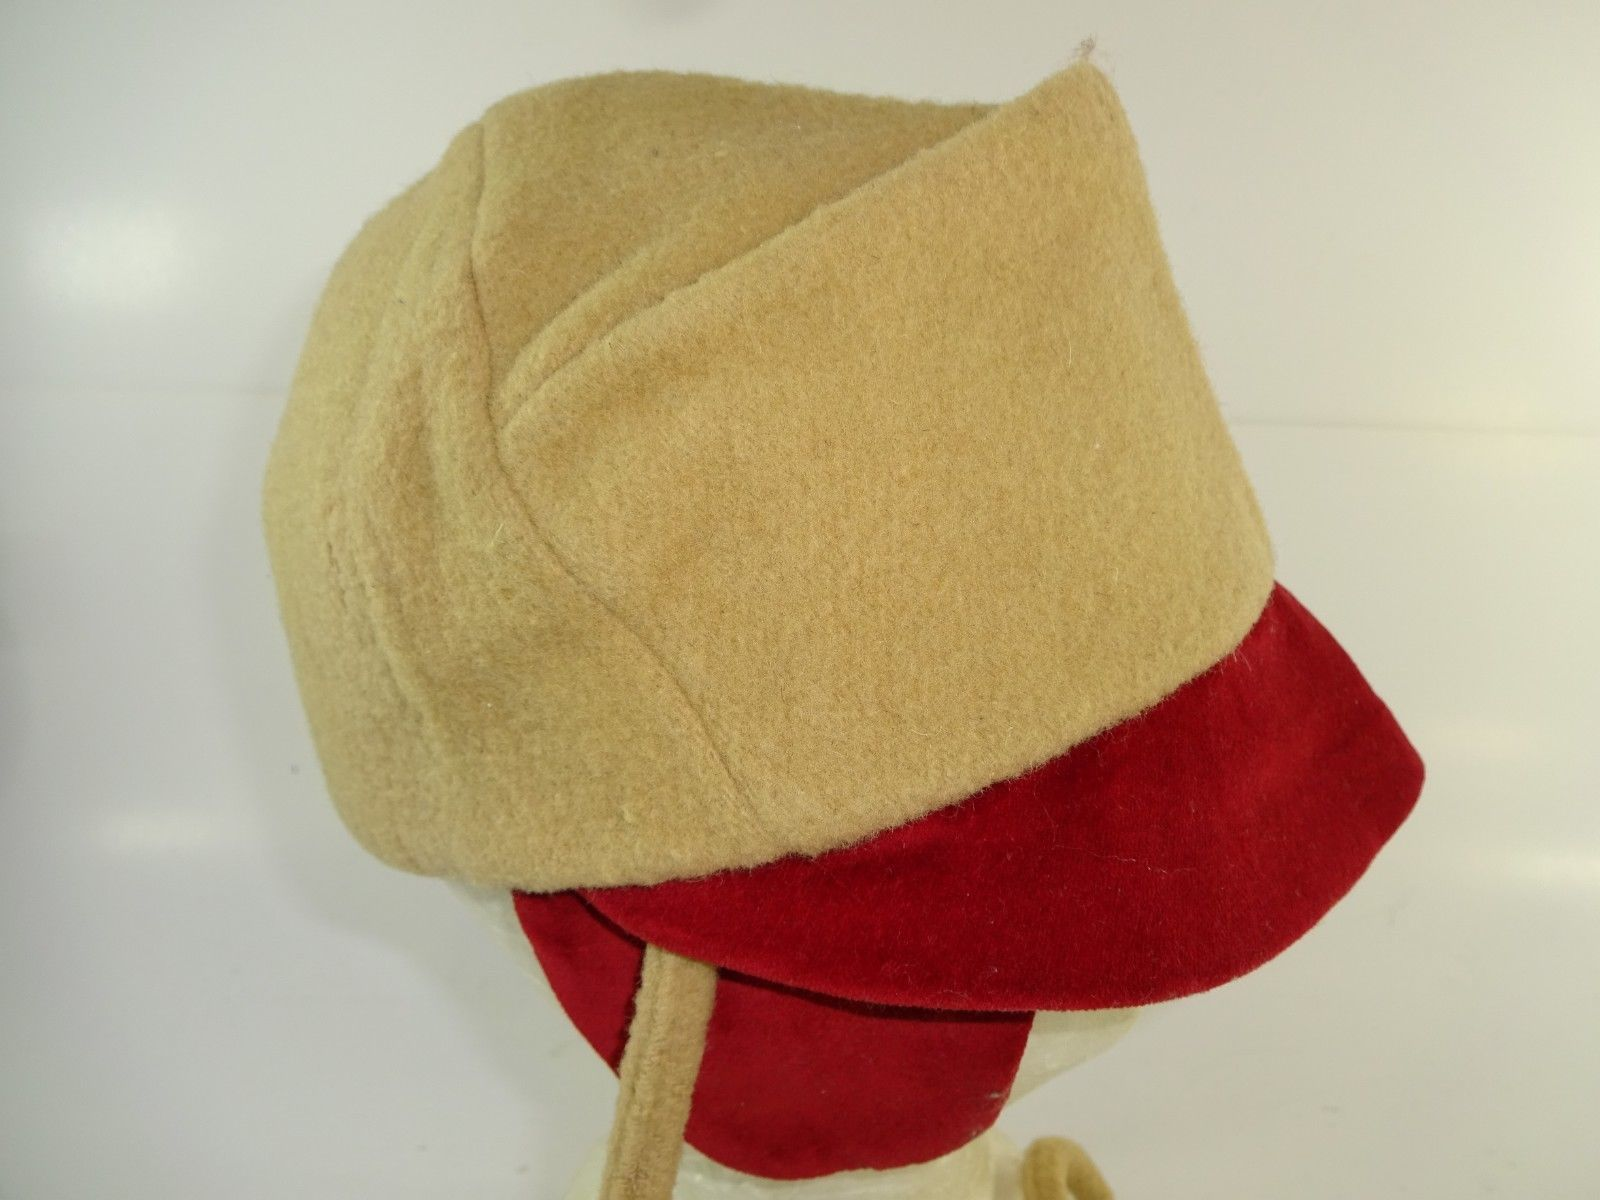 Vintage Rothschild Tan Red Wool Toddler Baby Bonnet Hat w/ Ear Covers & Chin Tie